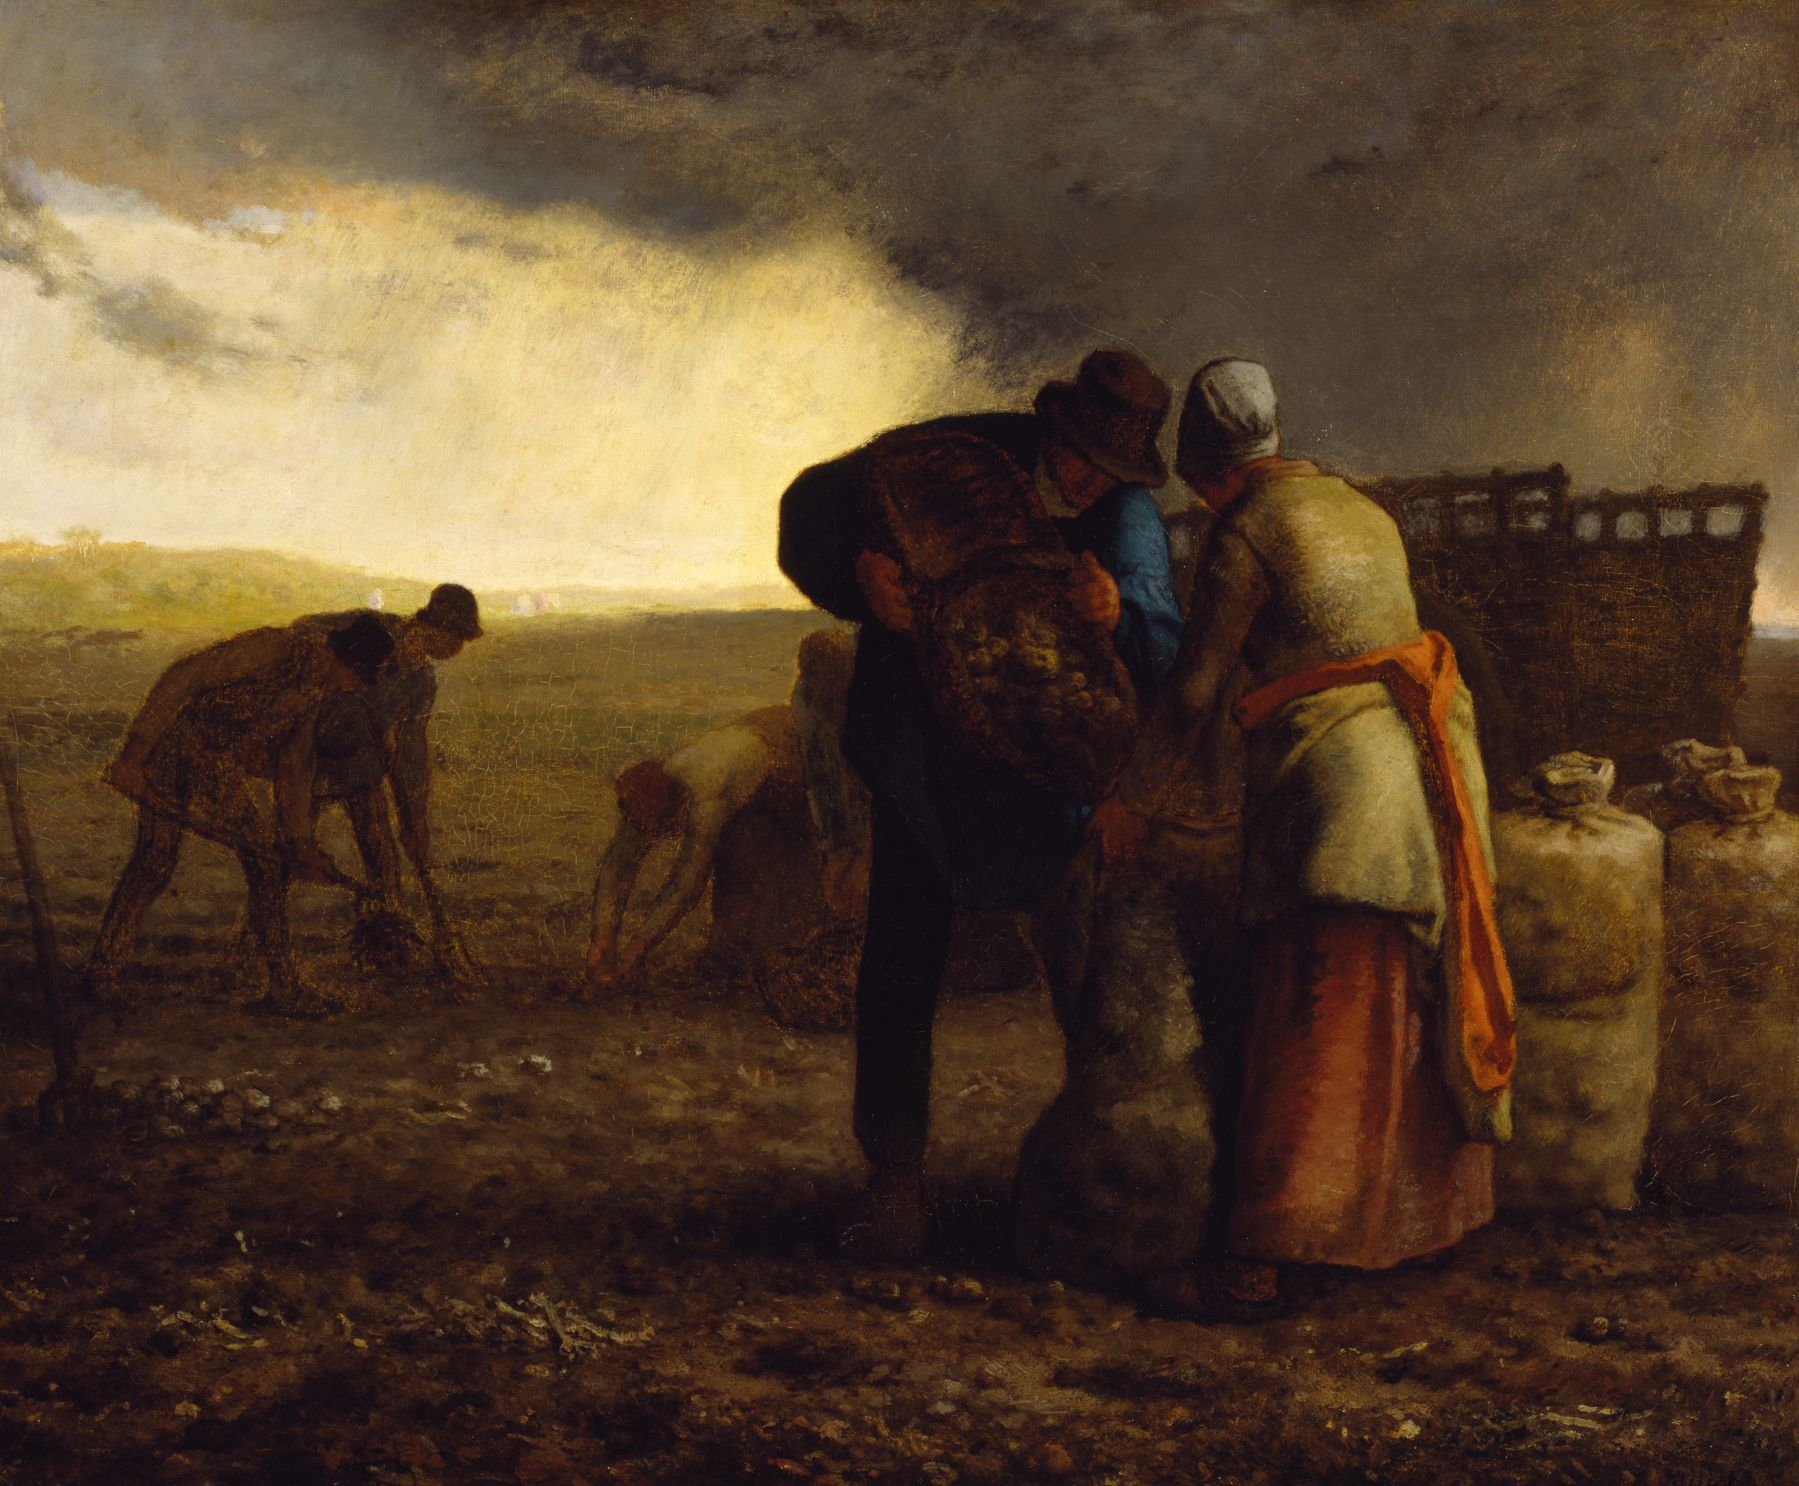 Realismo Pintura Caracteristicas Jean François Millet French 18141875 Realism